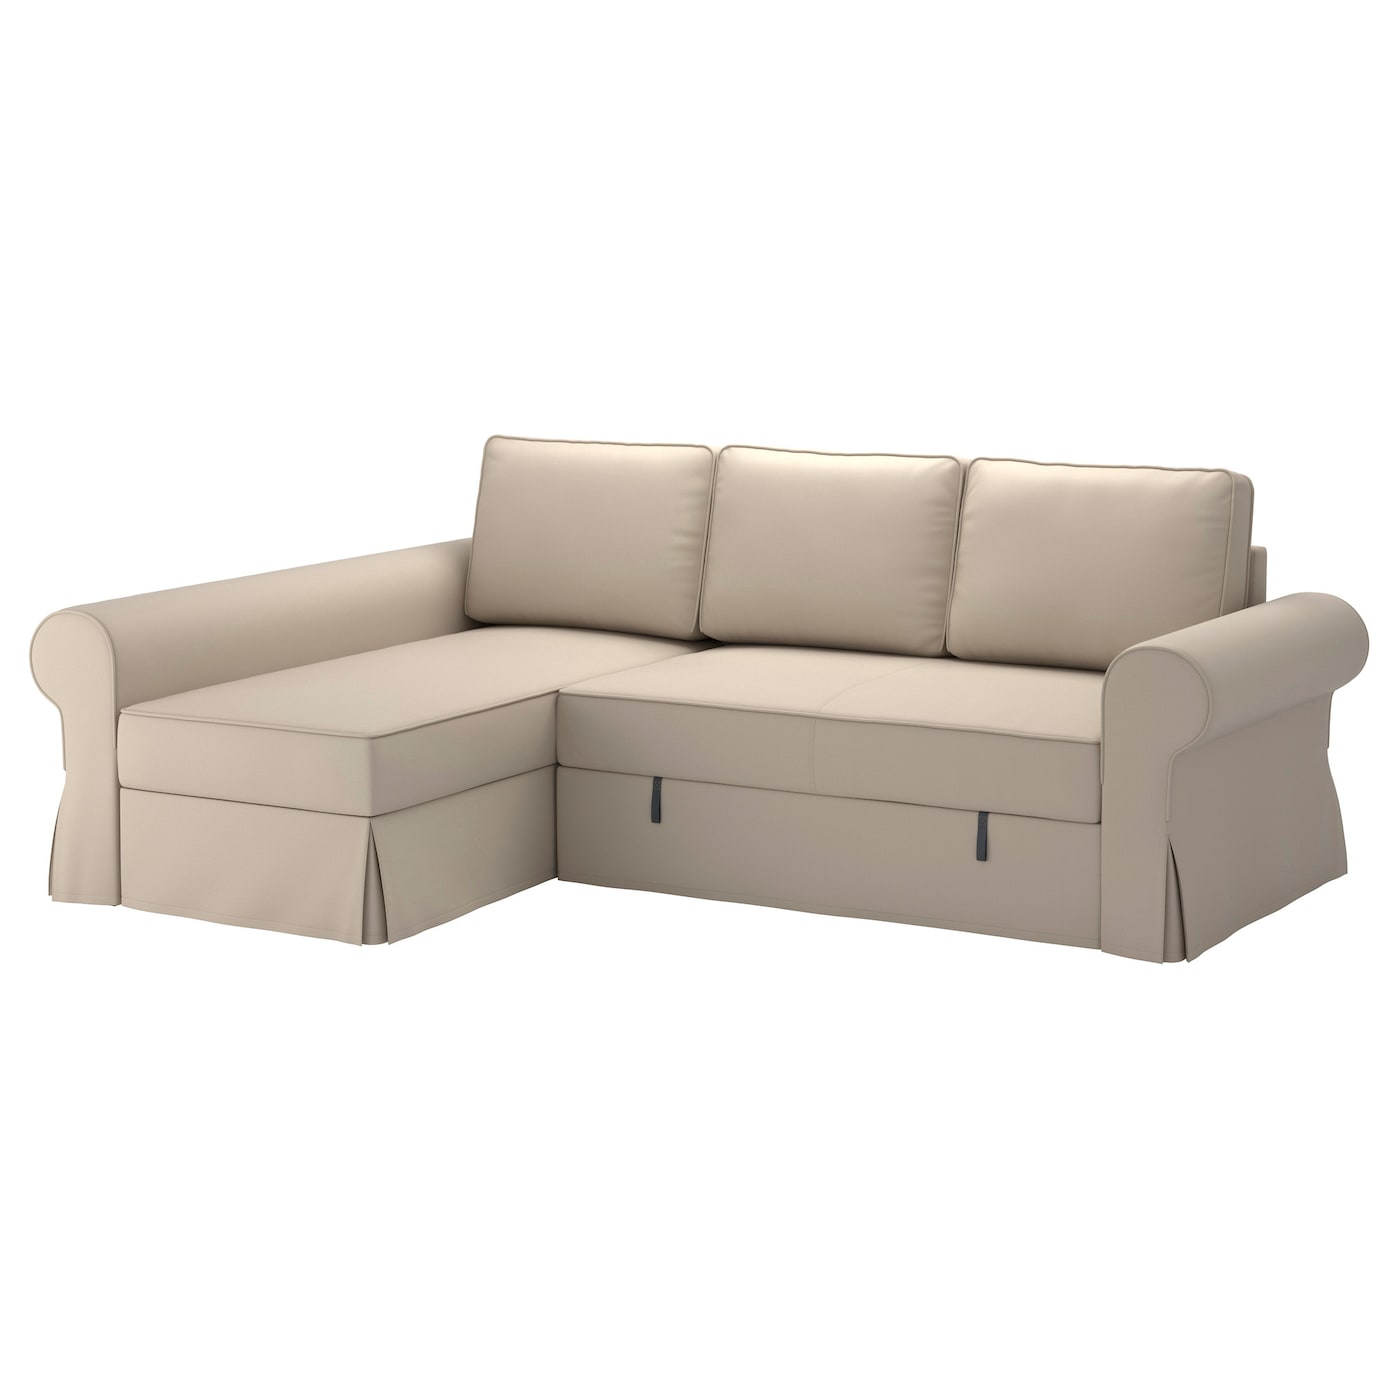 Backabro cover sofa bed with chaise longue ramna beige ikea for Chaise couch slipcover